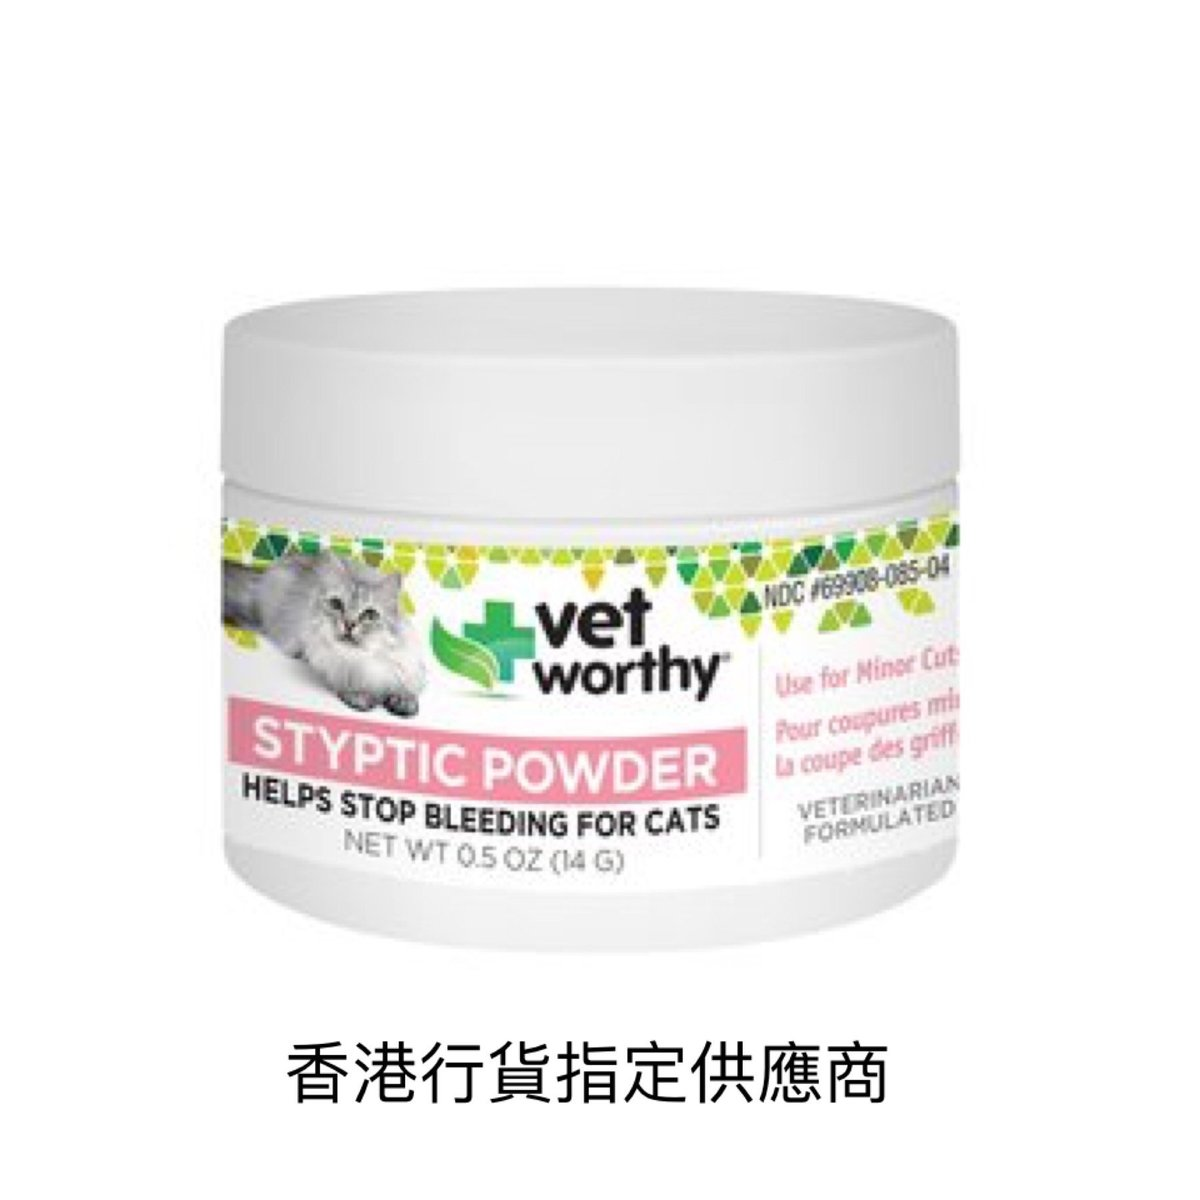 Styptic Powder for Cats, 0.5oz